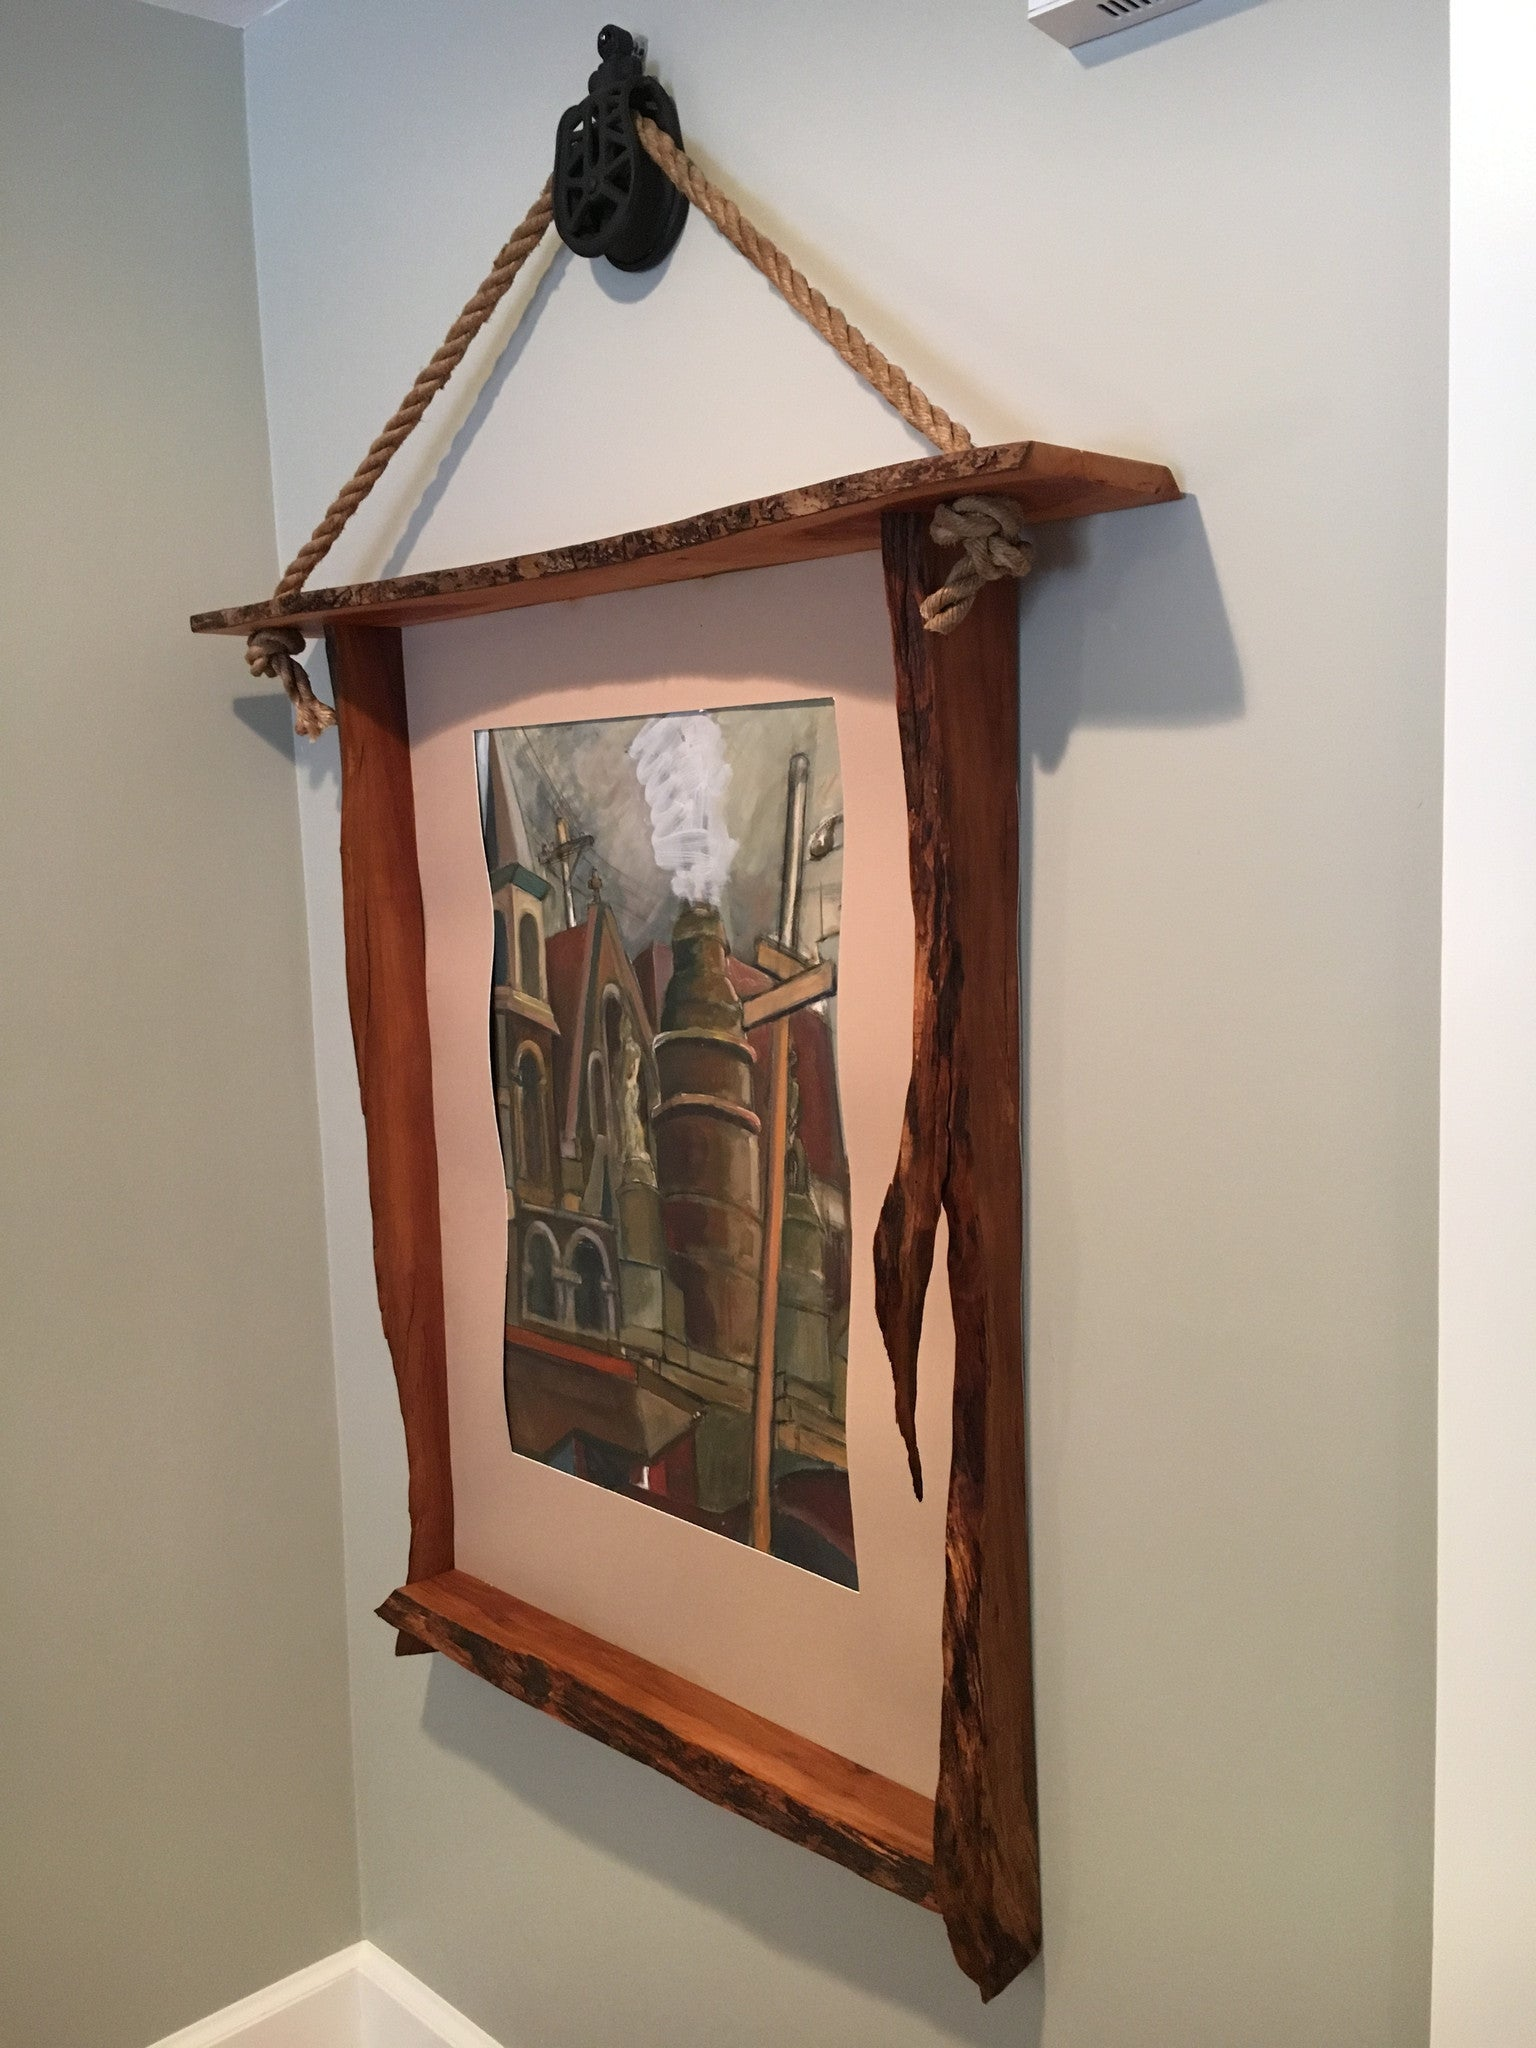 Rustic Wild Apple Live Edge Picture Frame Hung with a Vintage Pulley and Ship Rope